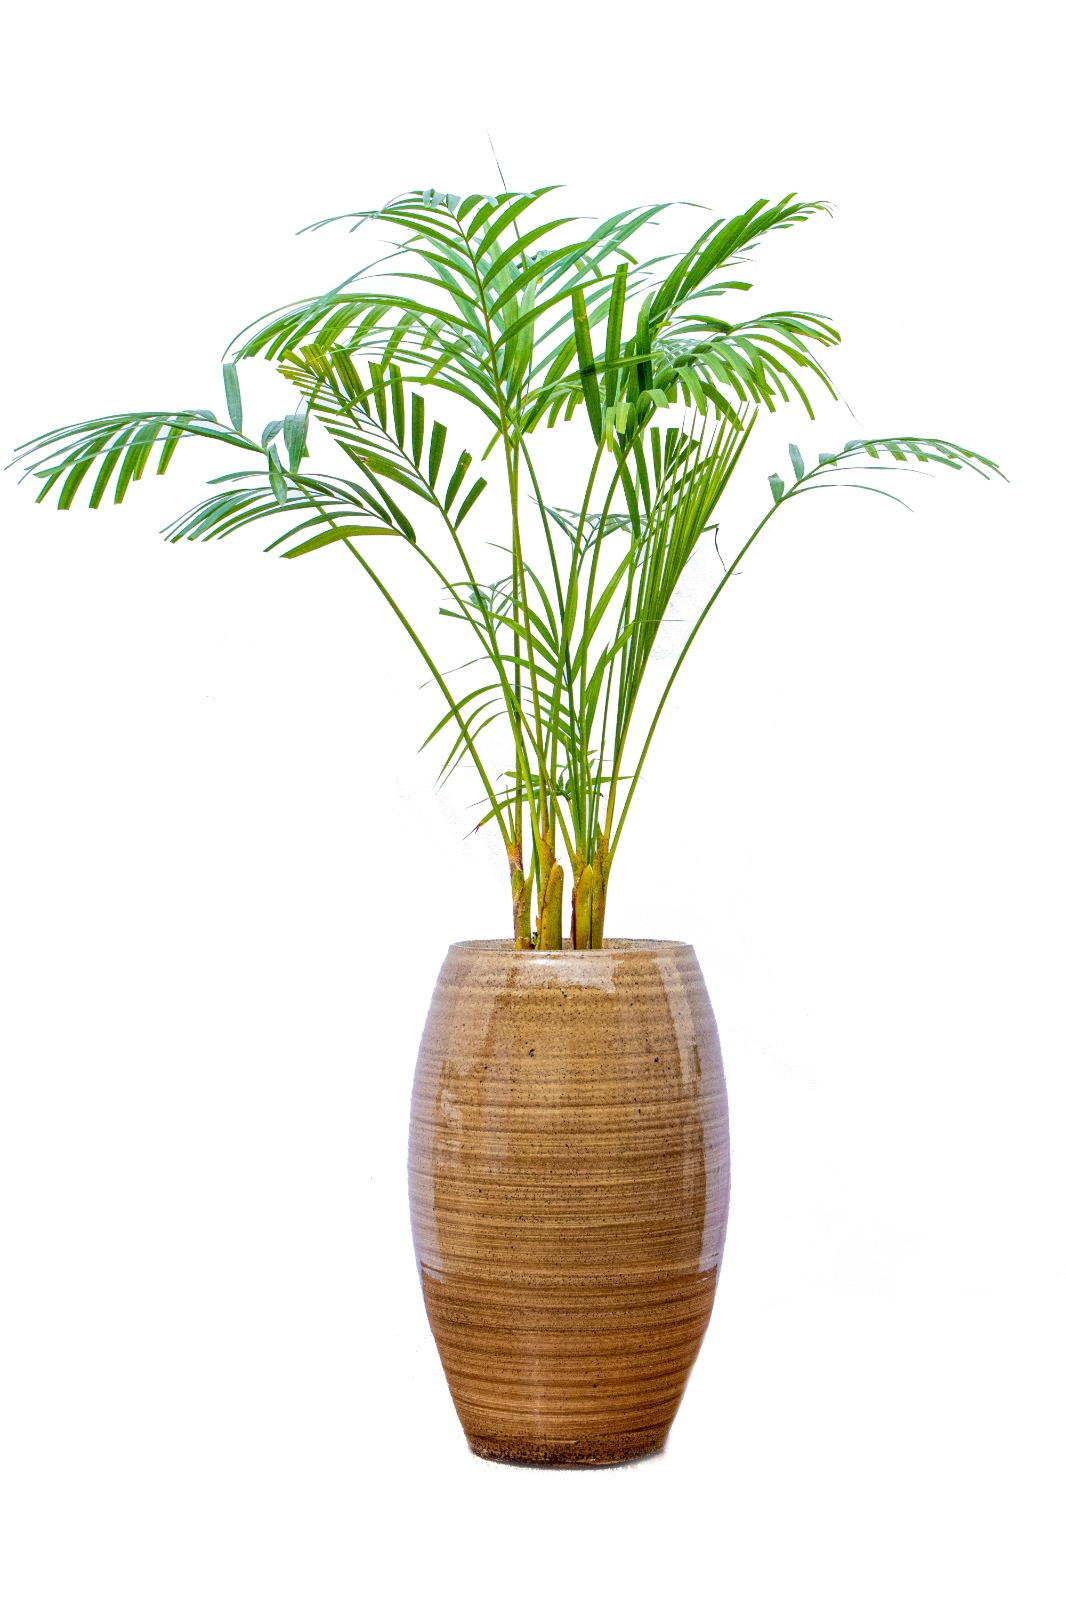 Dypsis Lutescens - Small Premium Collection